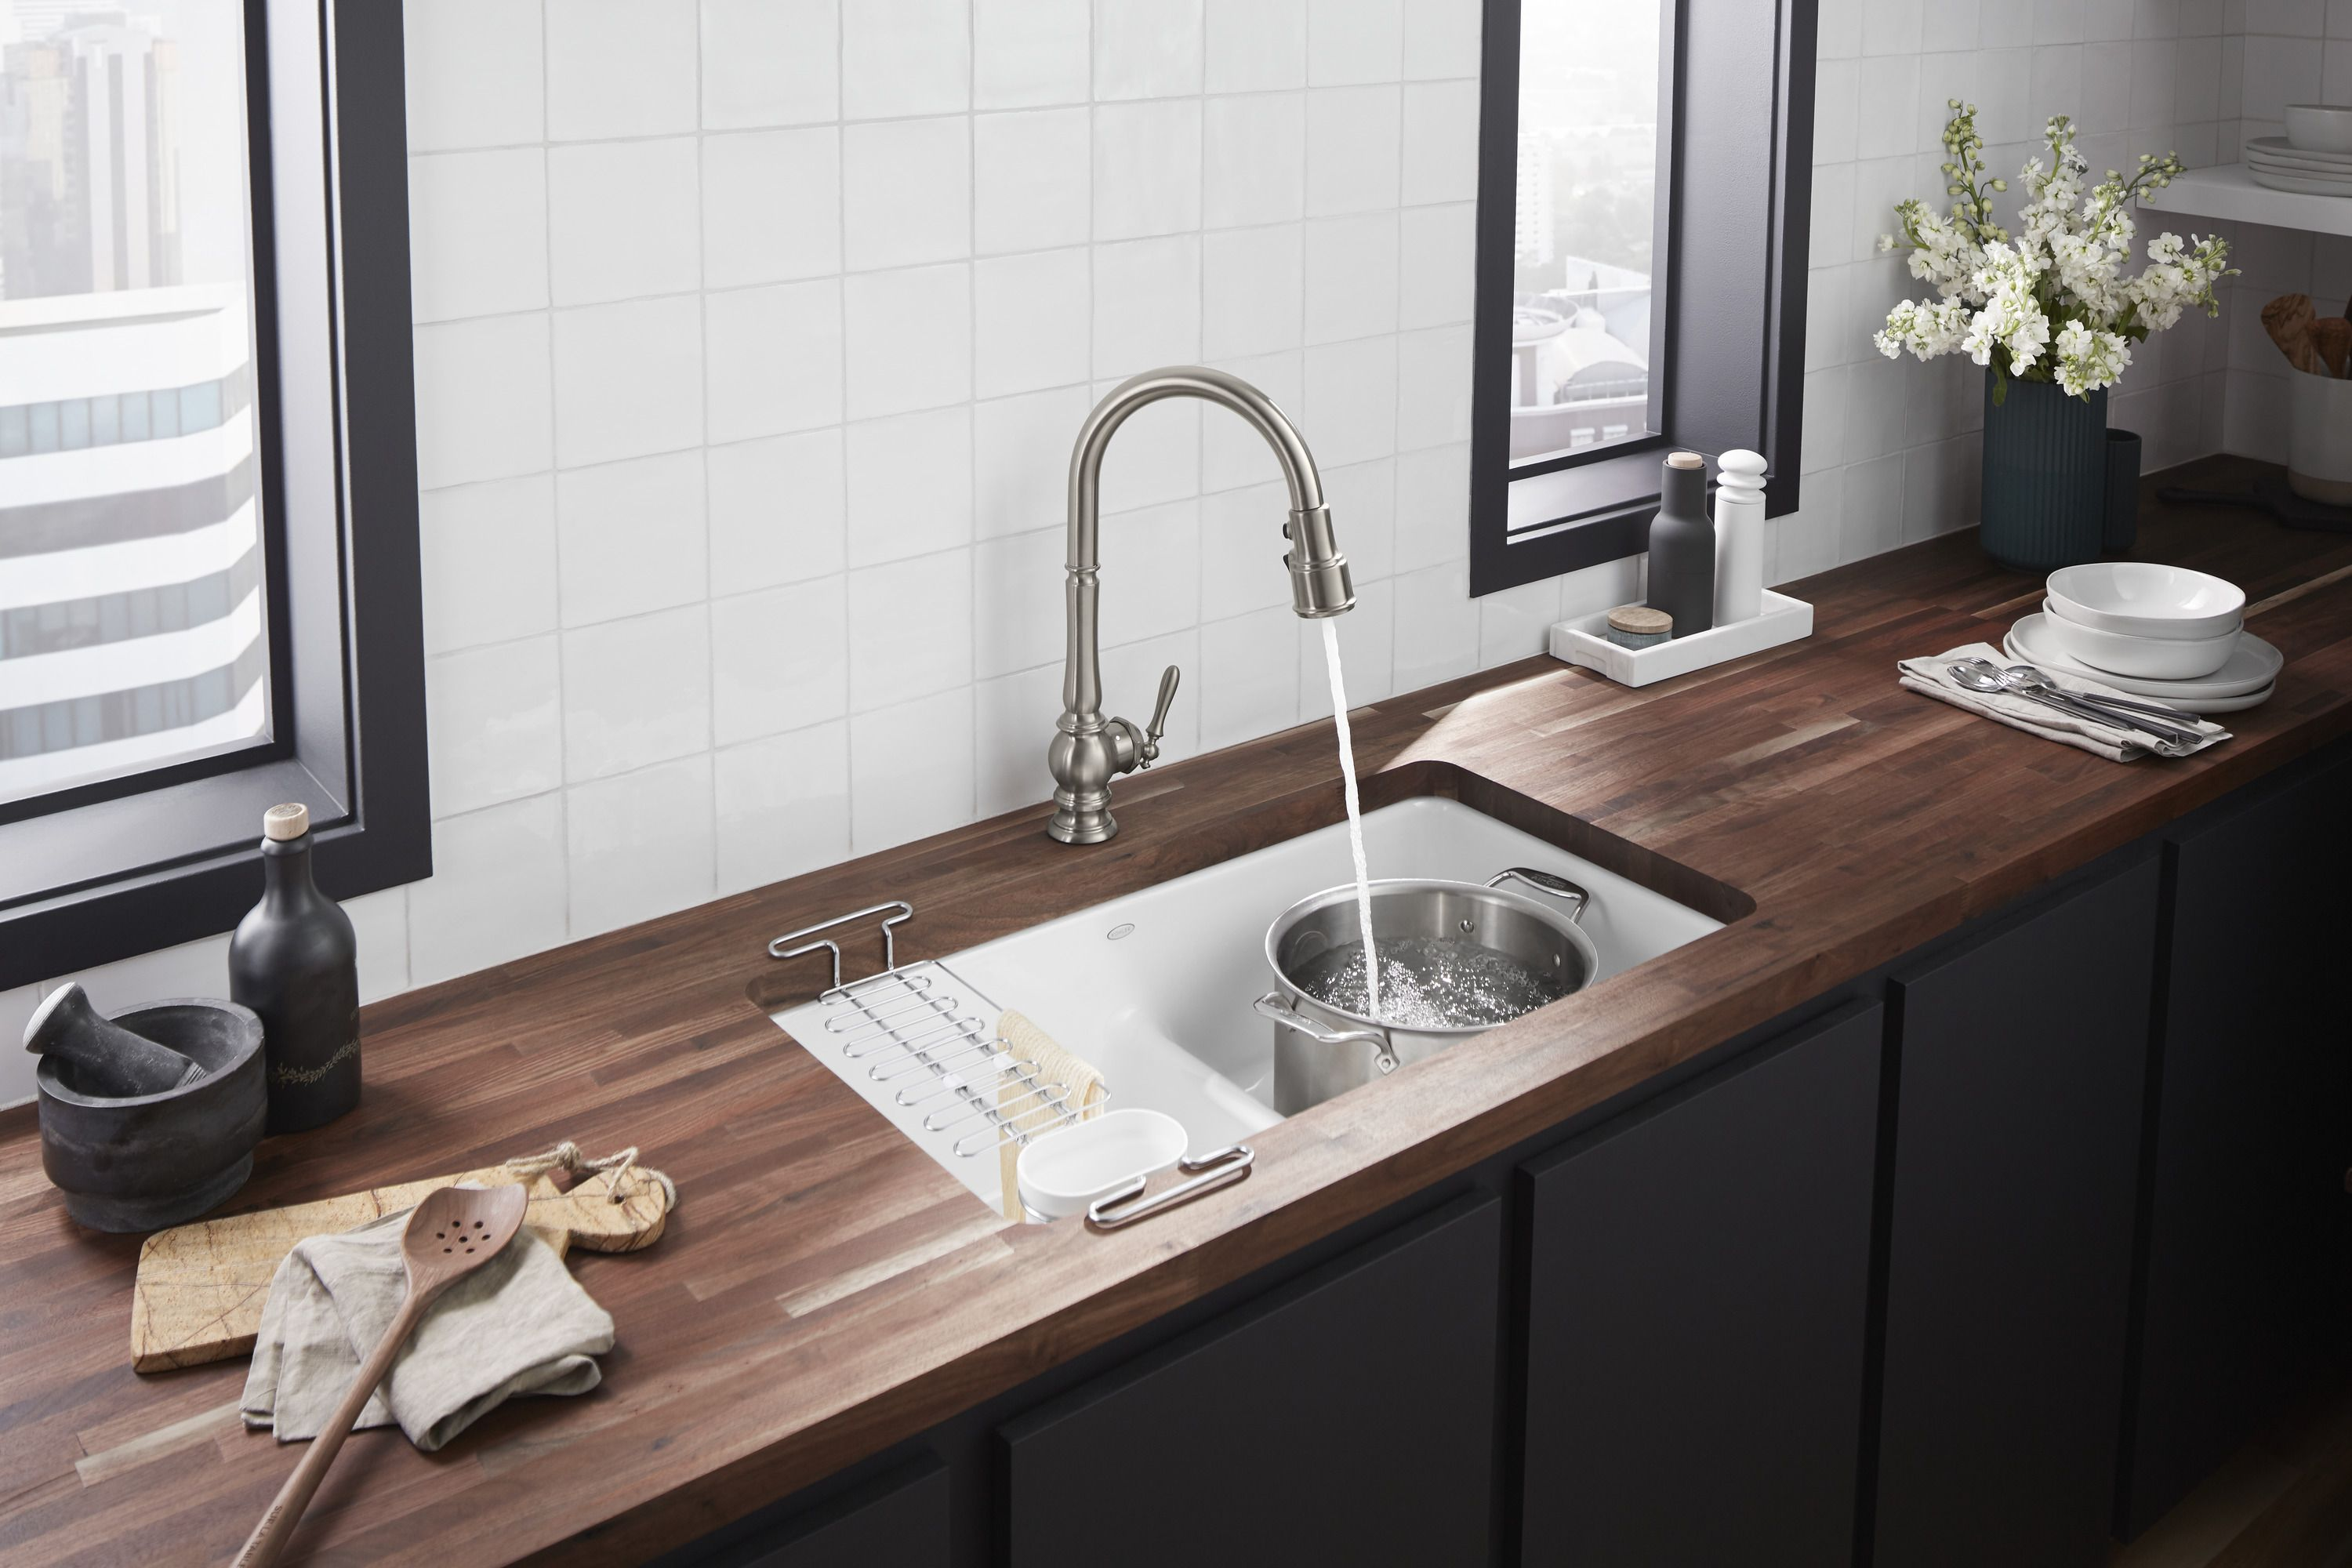 Artifacts Touchless Kitchen Faucet With Kohler Konnect Touchless Kitchen Faucet Kitchen Faucet Touchless Faucet